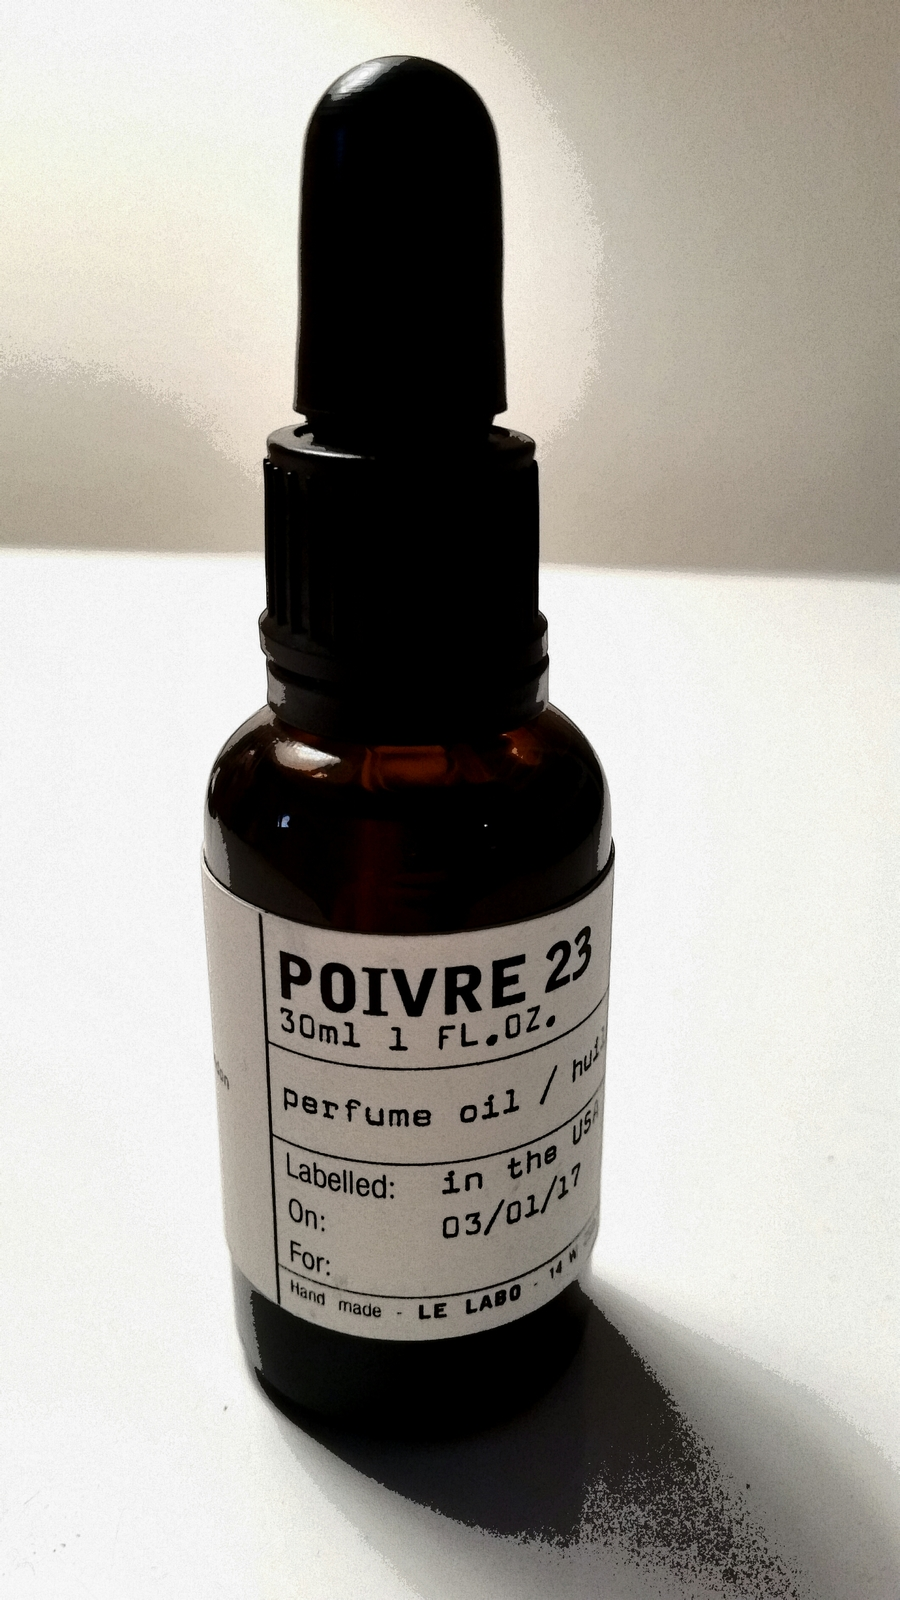 POIVRE 23 by LE LABO 5ml Travel Roll On STYRAX VANILLA PEPPER Perfume Oil London